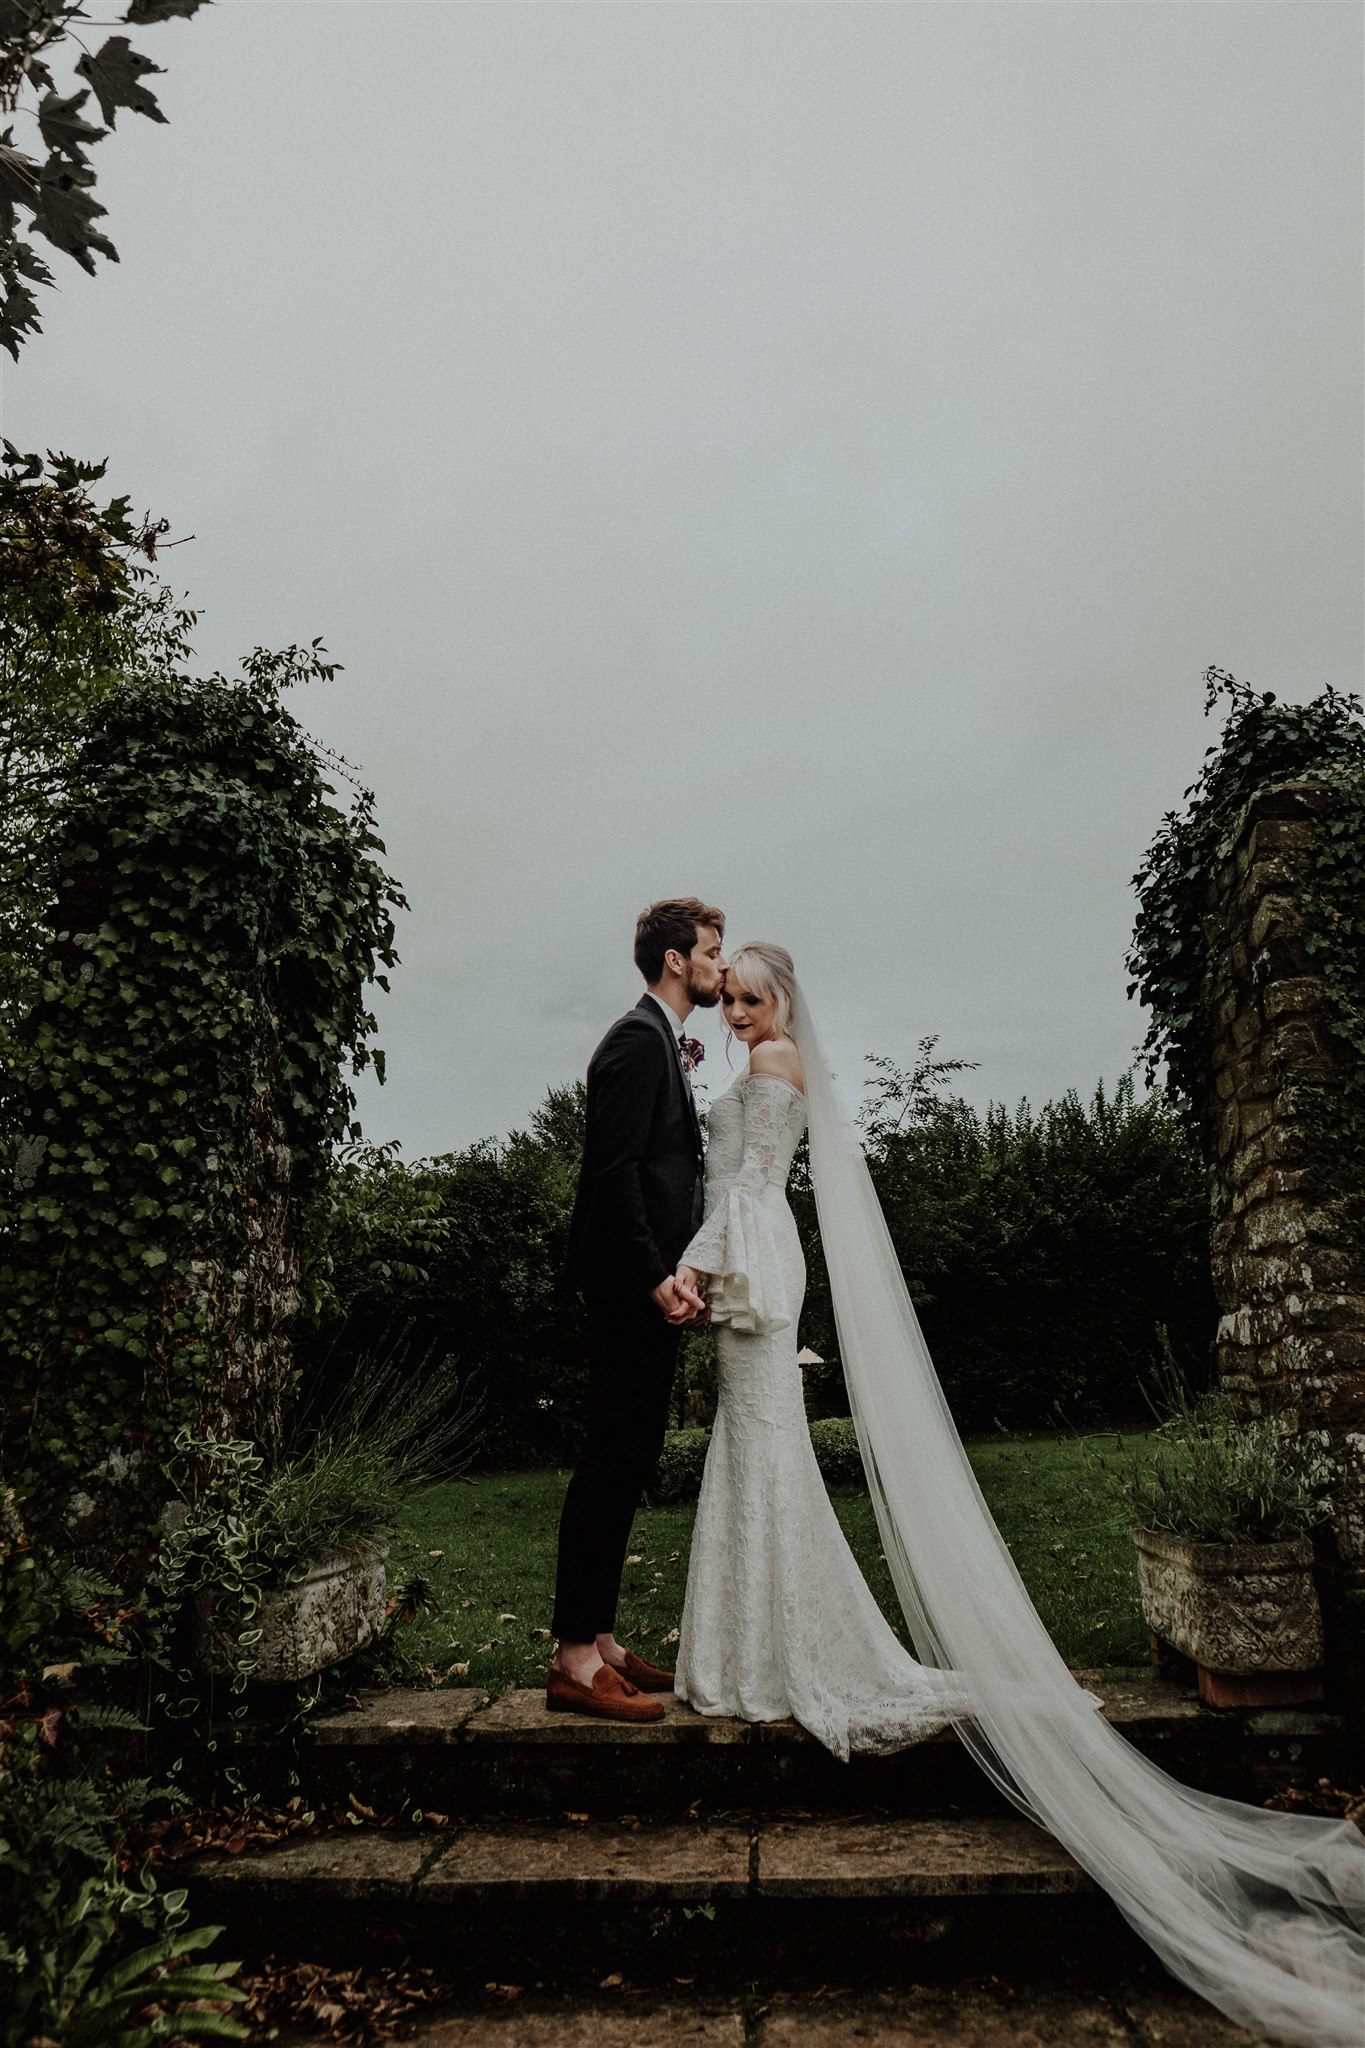 The groom was wearing a black suit, brown moccasins